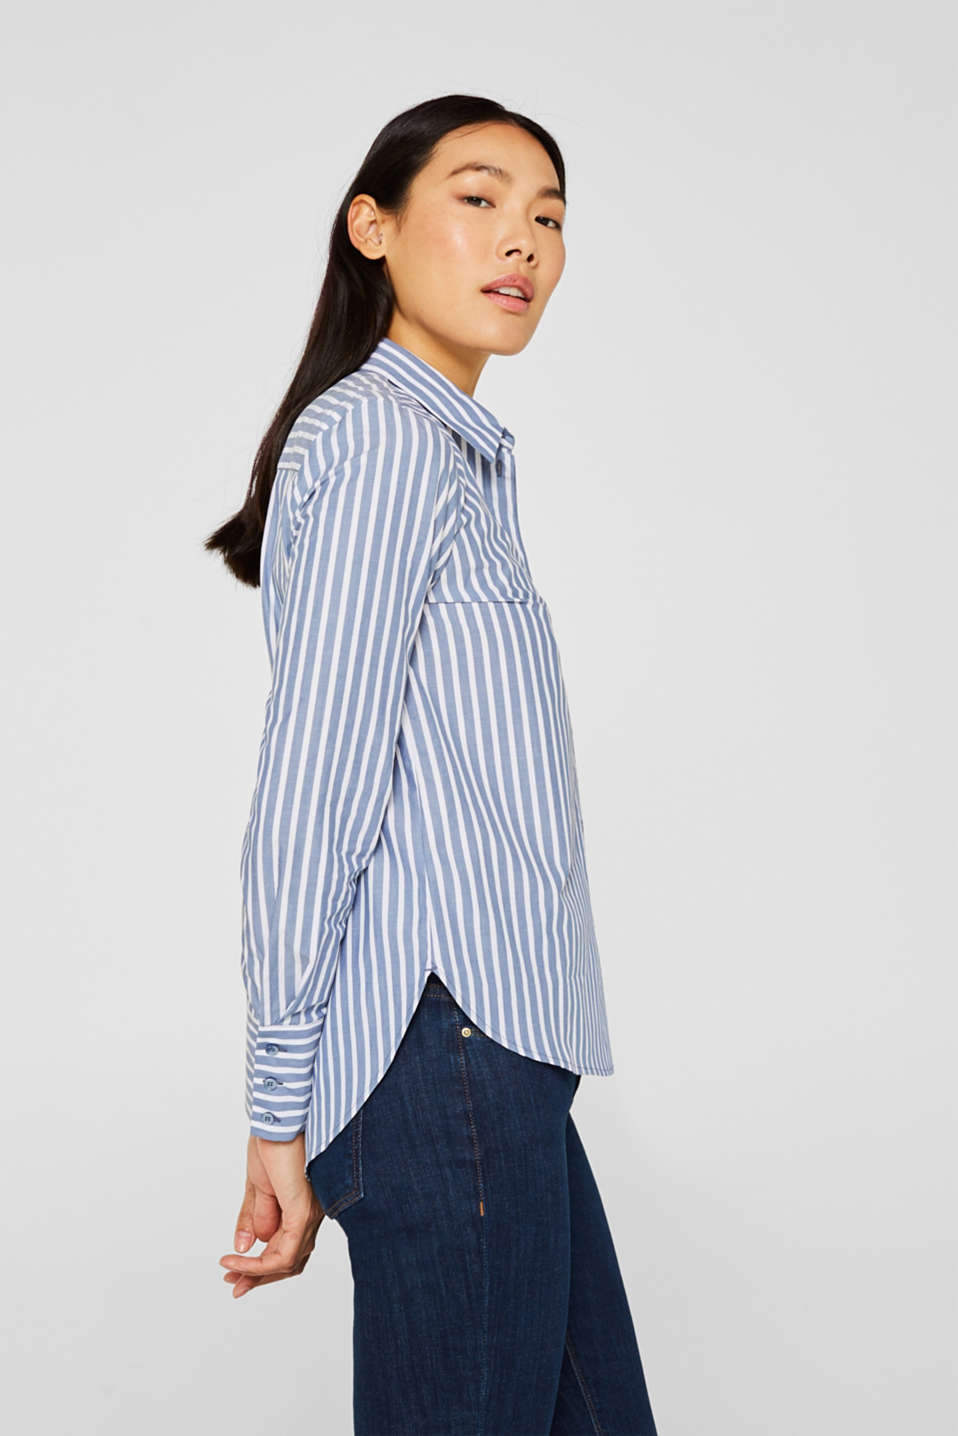 Blouse with stripes, 100% cotton, BLUE, detail image number 5